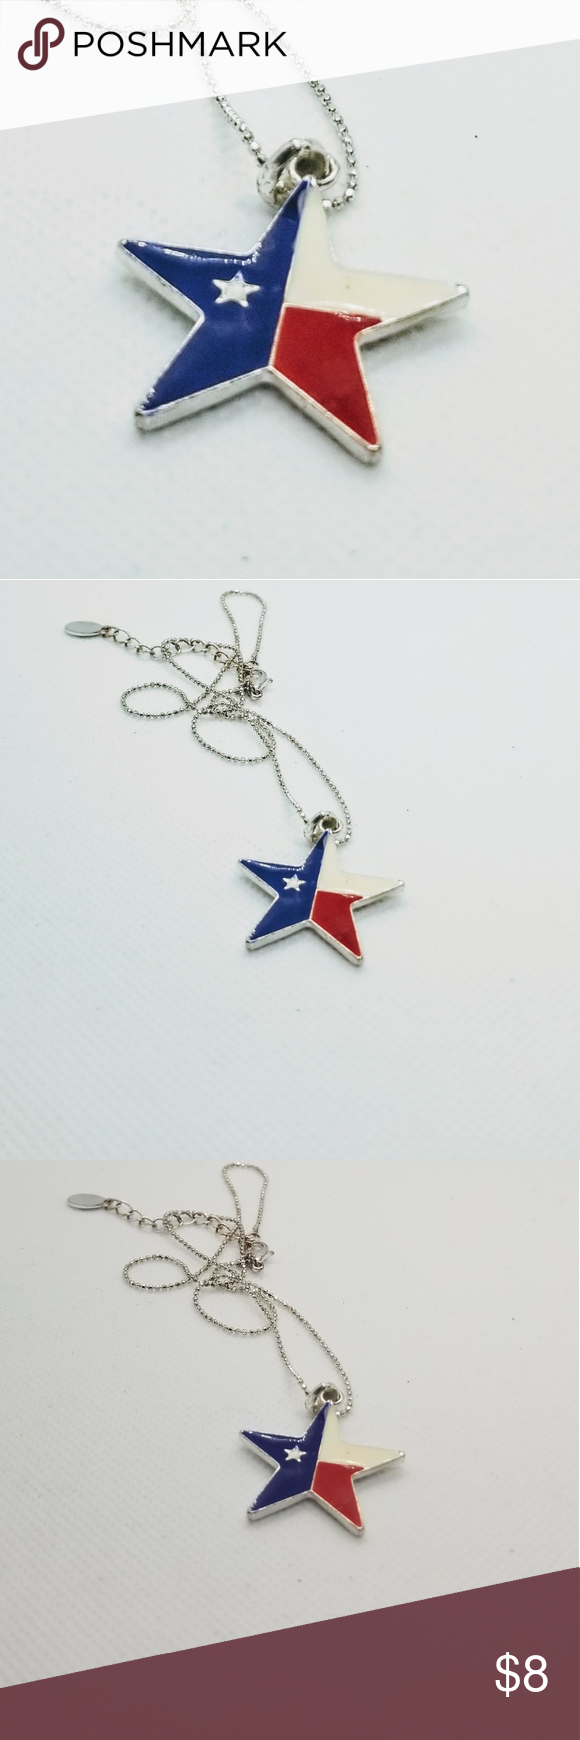 Texas Star Necklace Free With Regular Purchase Star Necklace Texas Star Enamel Necklaces